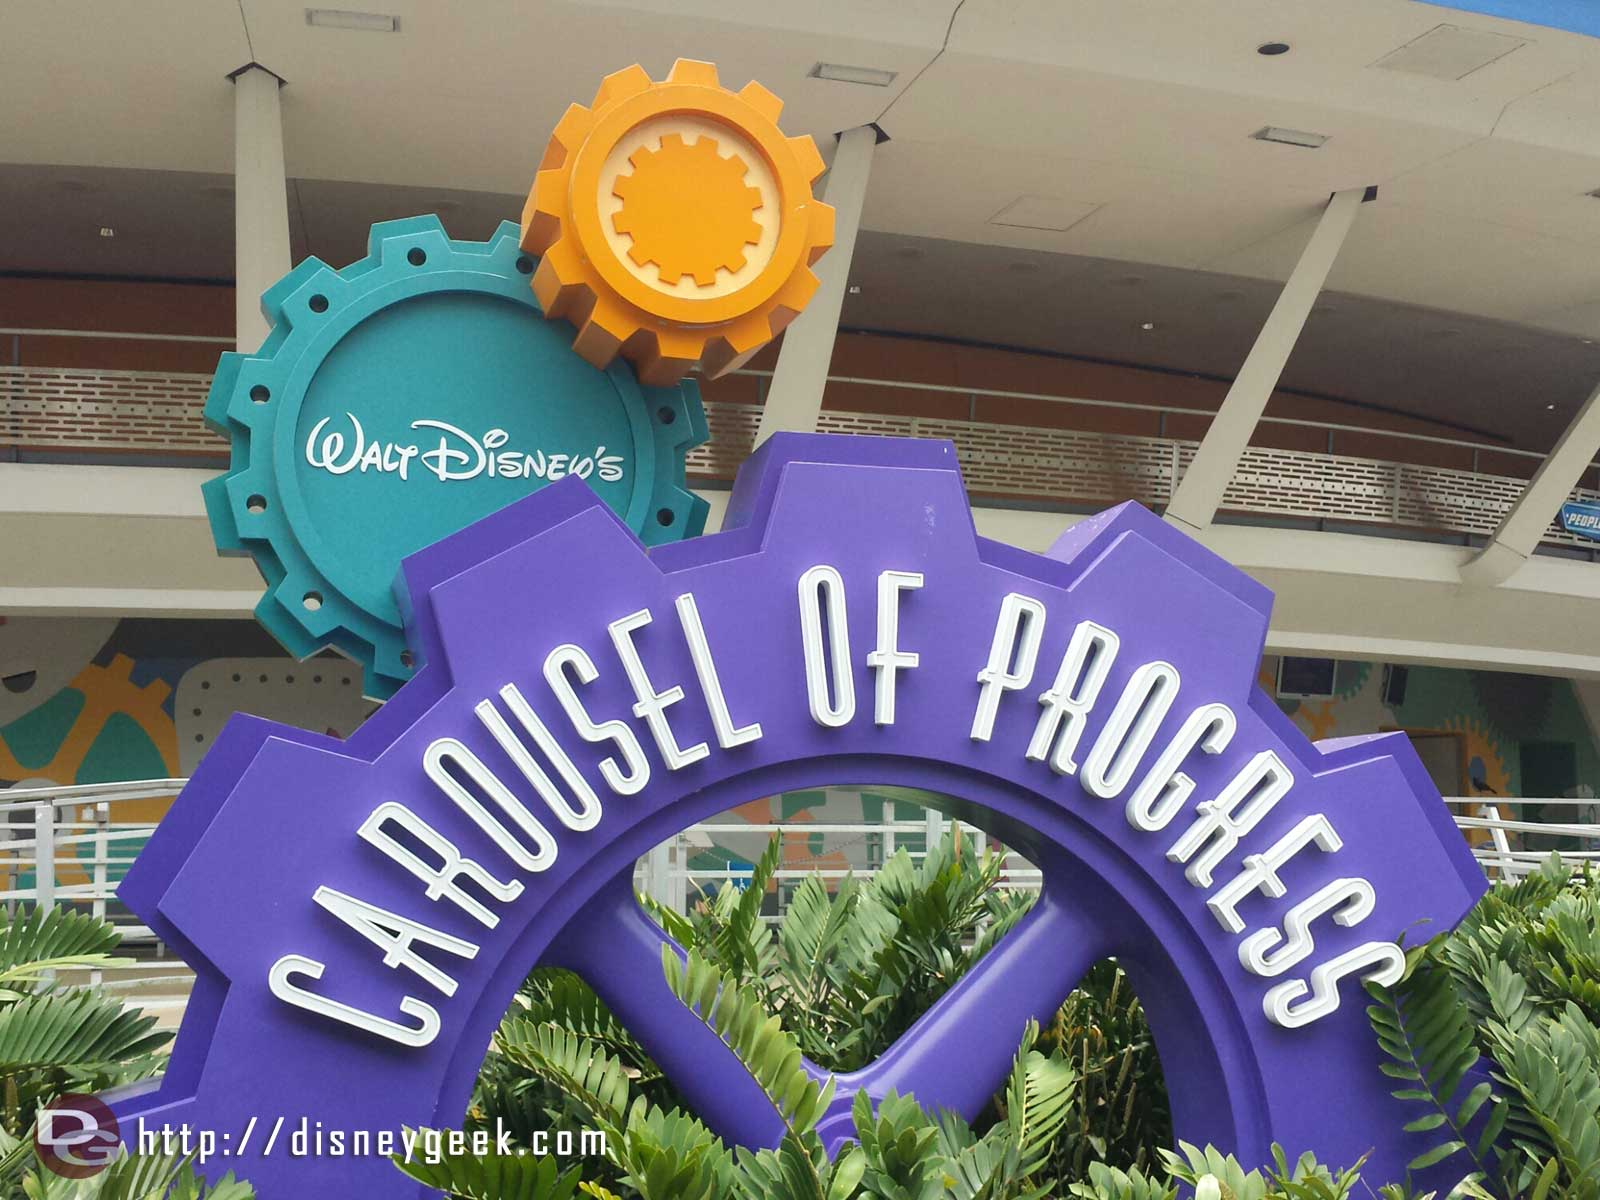 The Carousel of Progress celebrated its 50th Anniversary since opening at the New York World Fair last week.